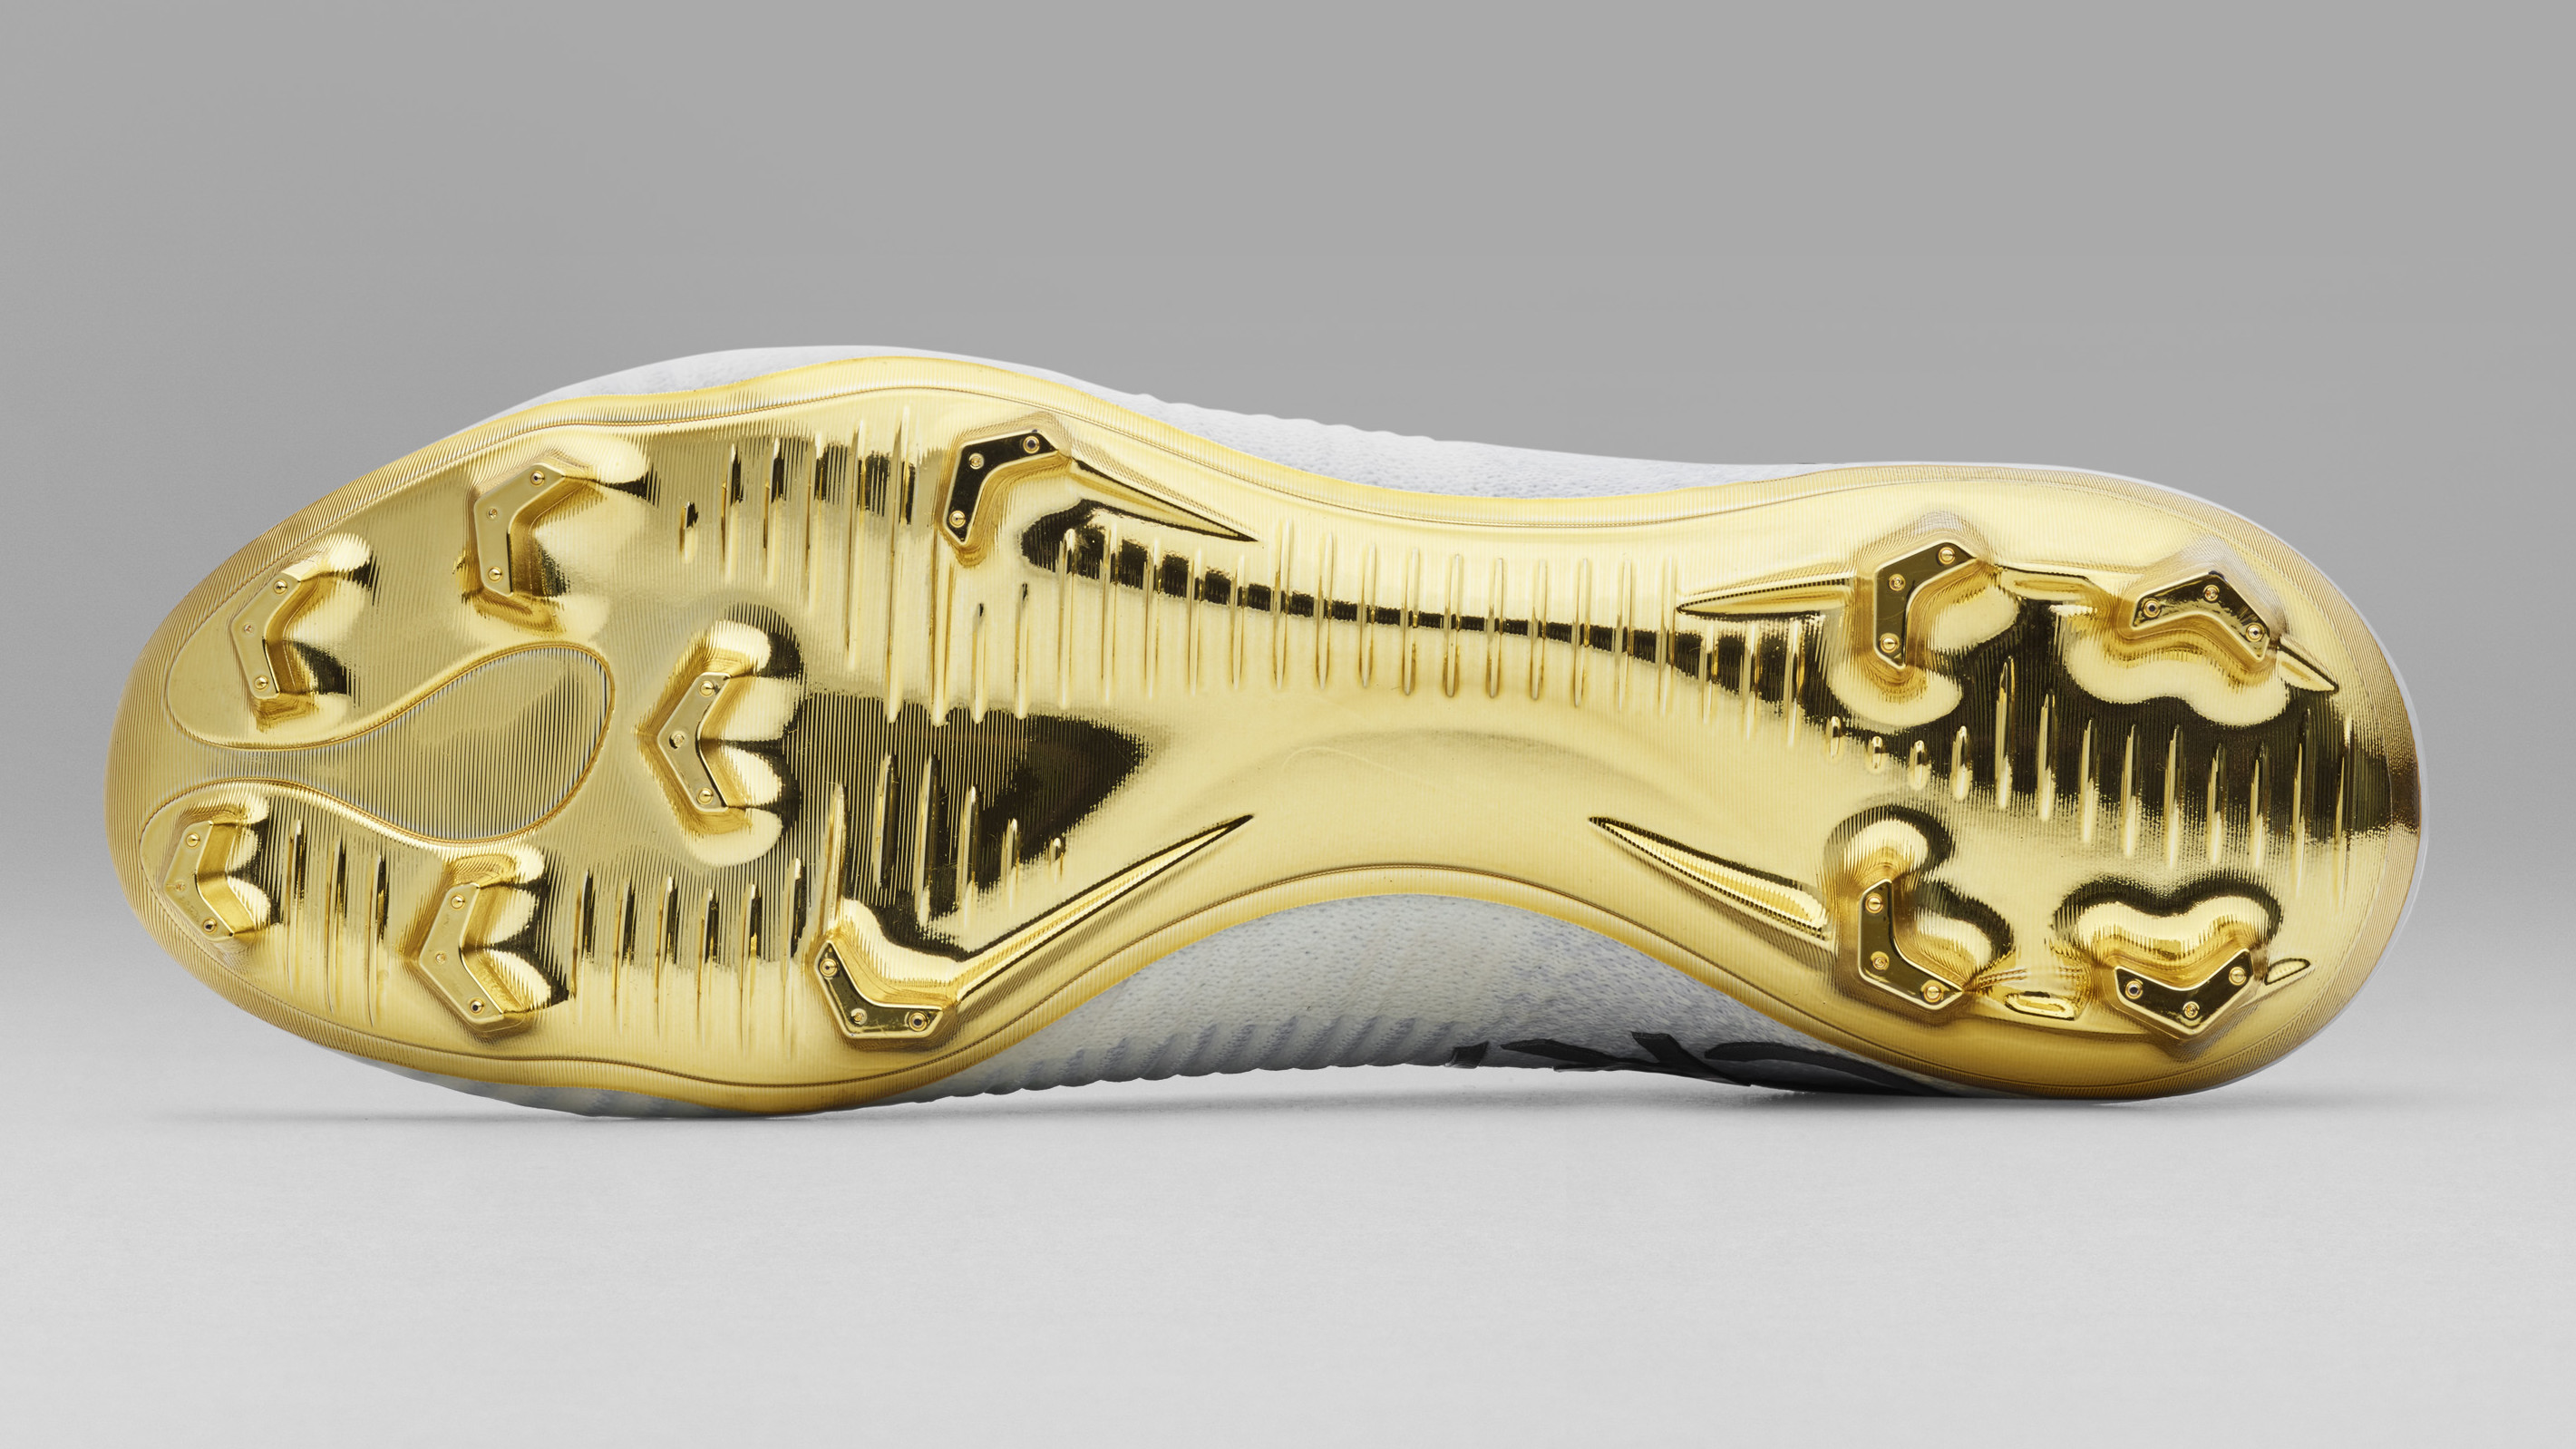 ronaldo new cleats gold white